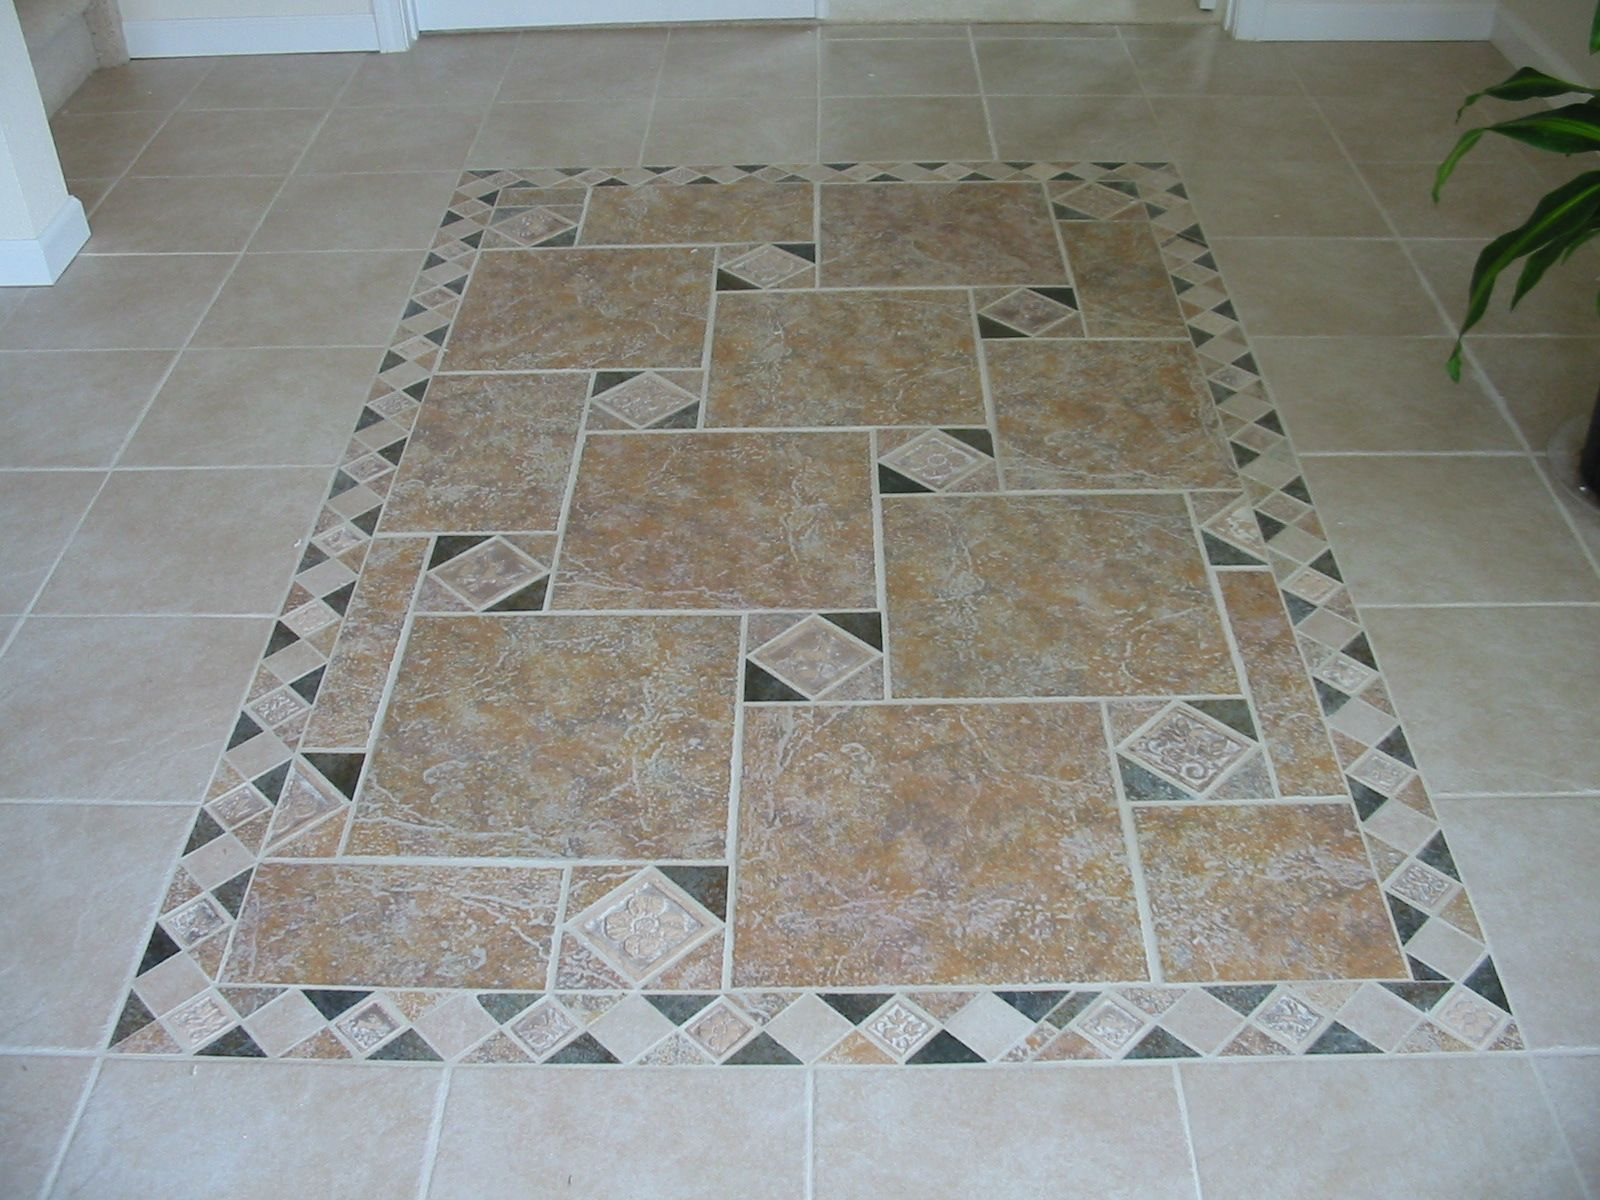 Tiles Decoration Pattern Repinned Design Ceramic Tile Patterns Flooring Ideas ~ Though